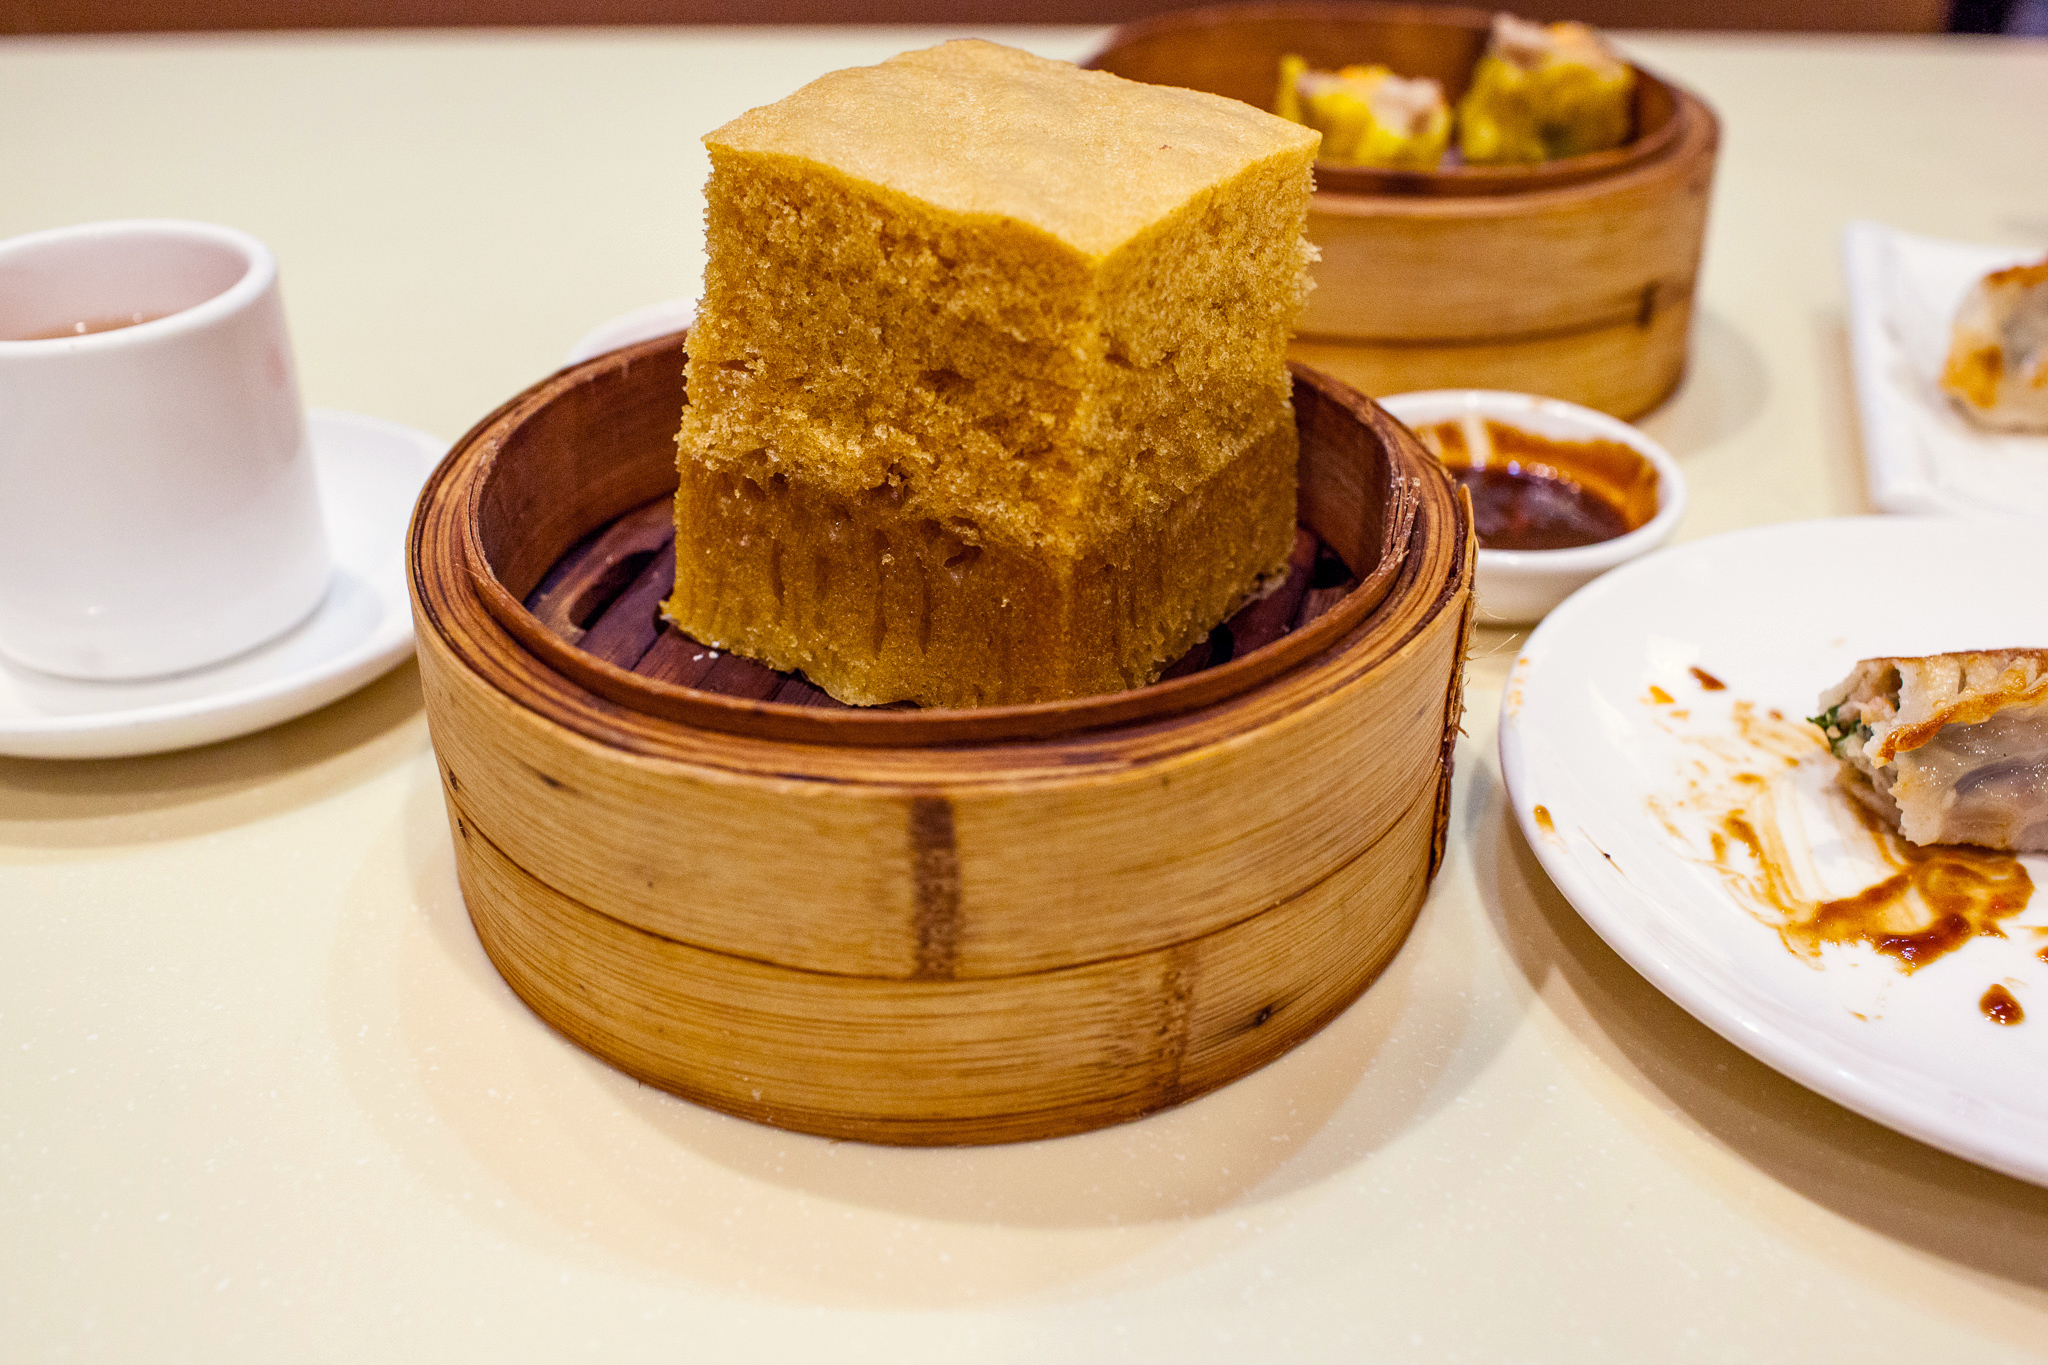 Malay sponge cake at MingHin This brown sugar cake, so light it barely fills you up, is the perfect cap to a hearty dim sum session. $3.15.